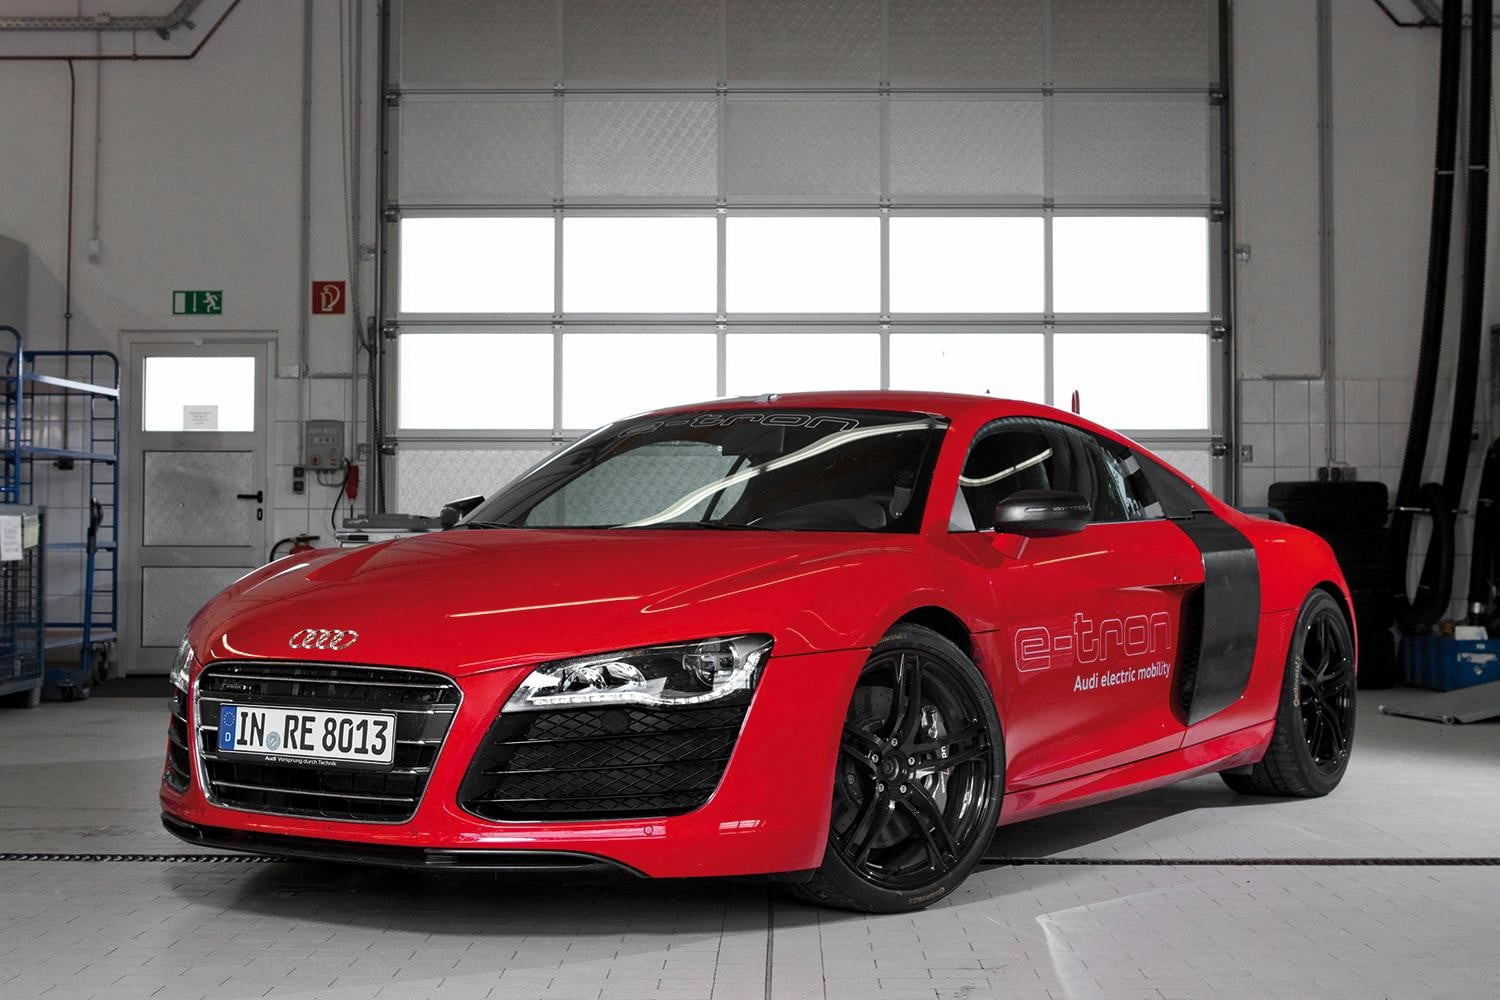 2015 Audi R8 E Tron On Sale Second Half Of 2014 With 280